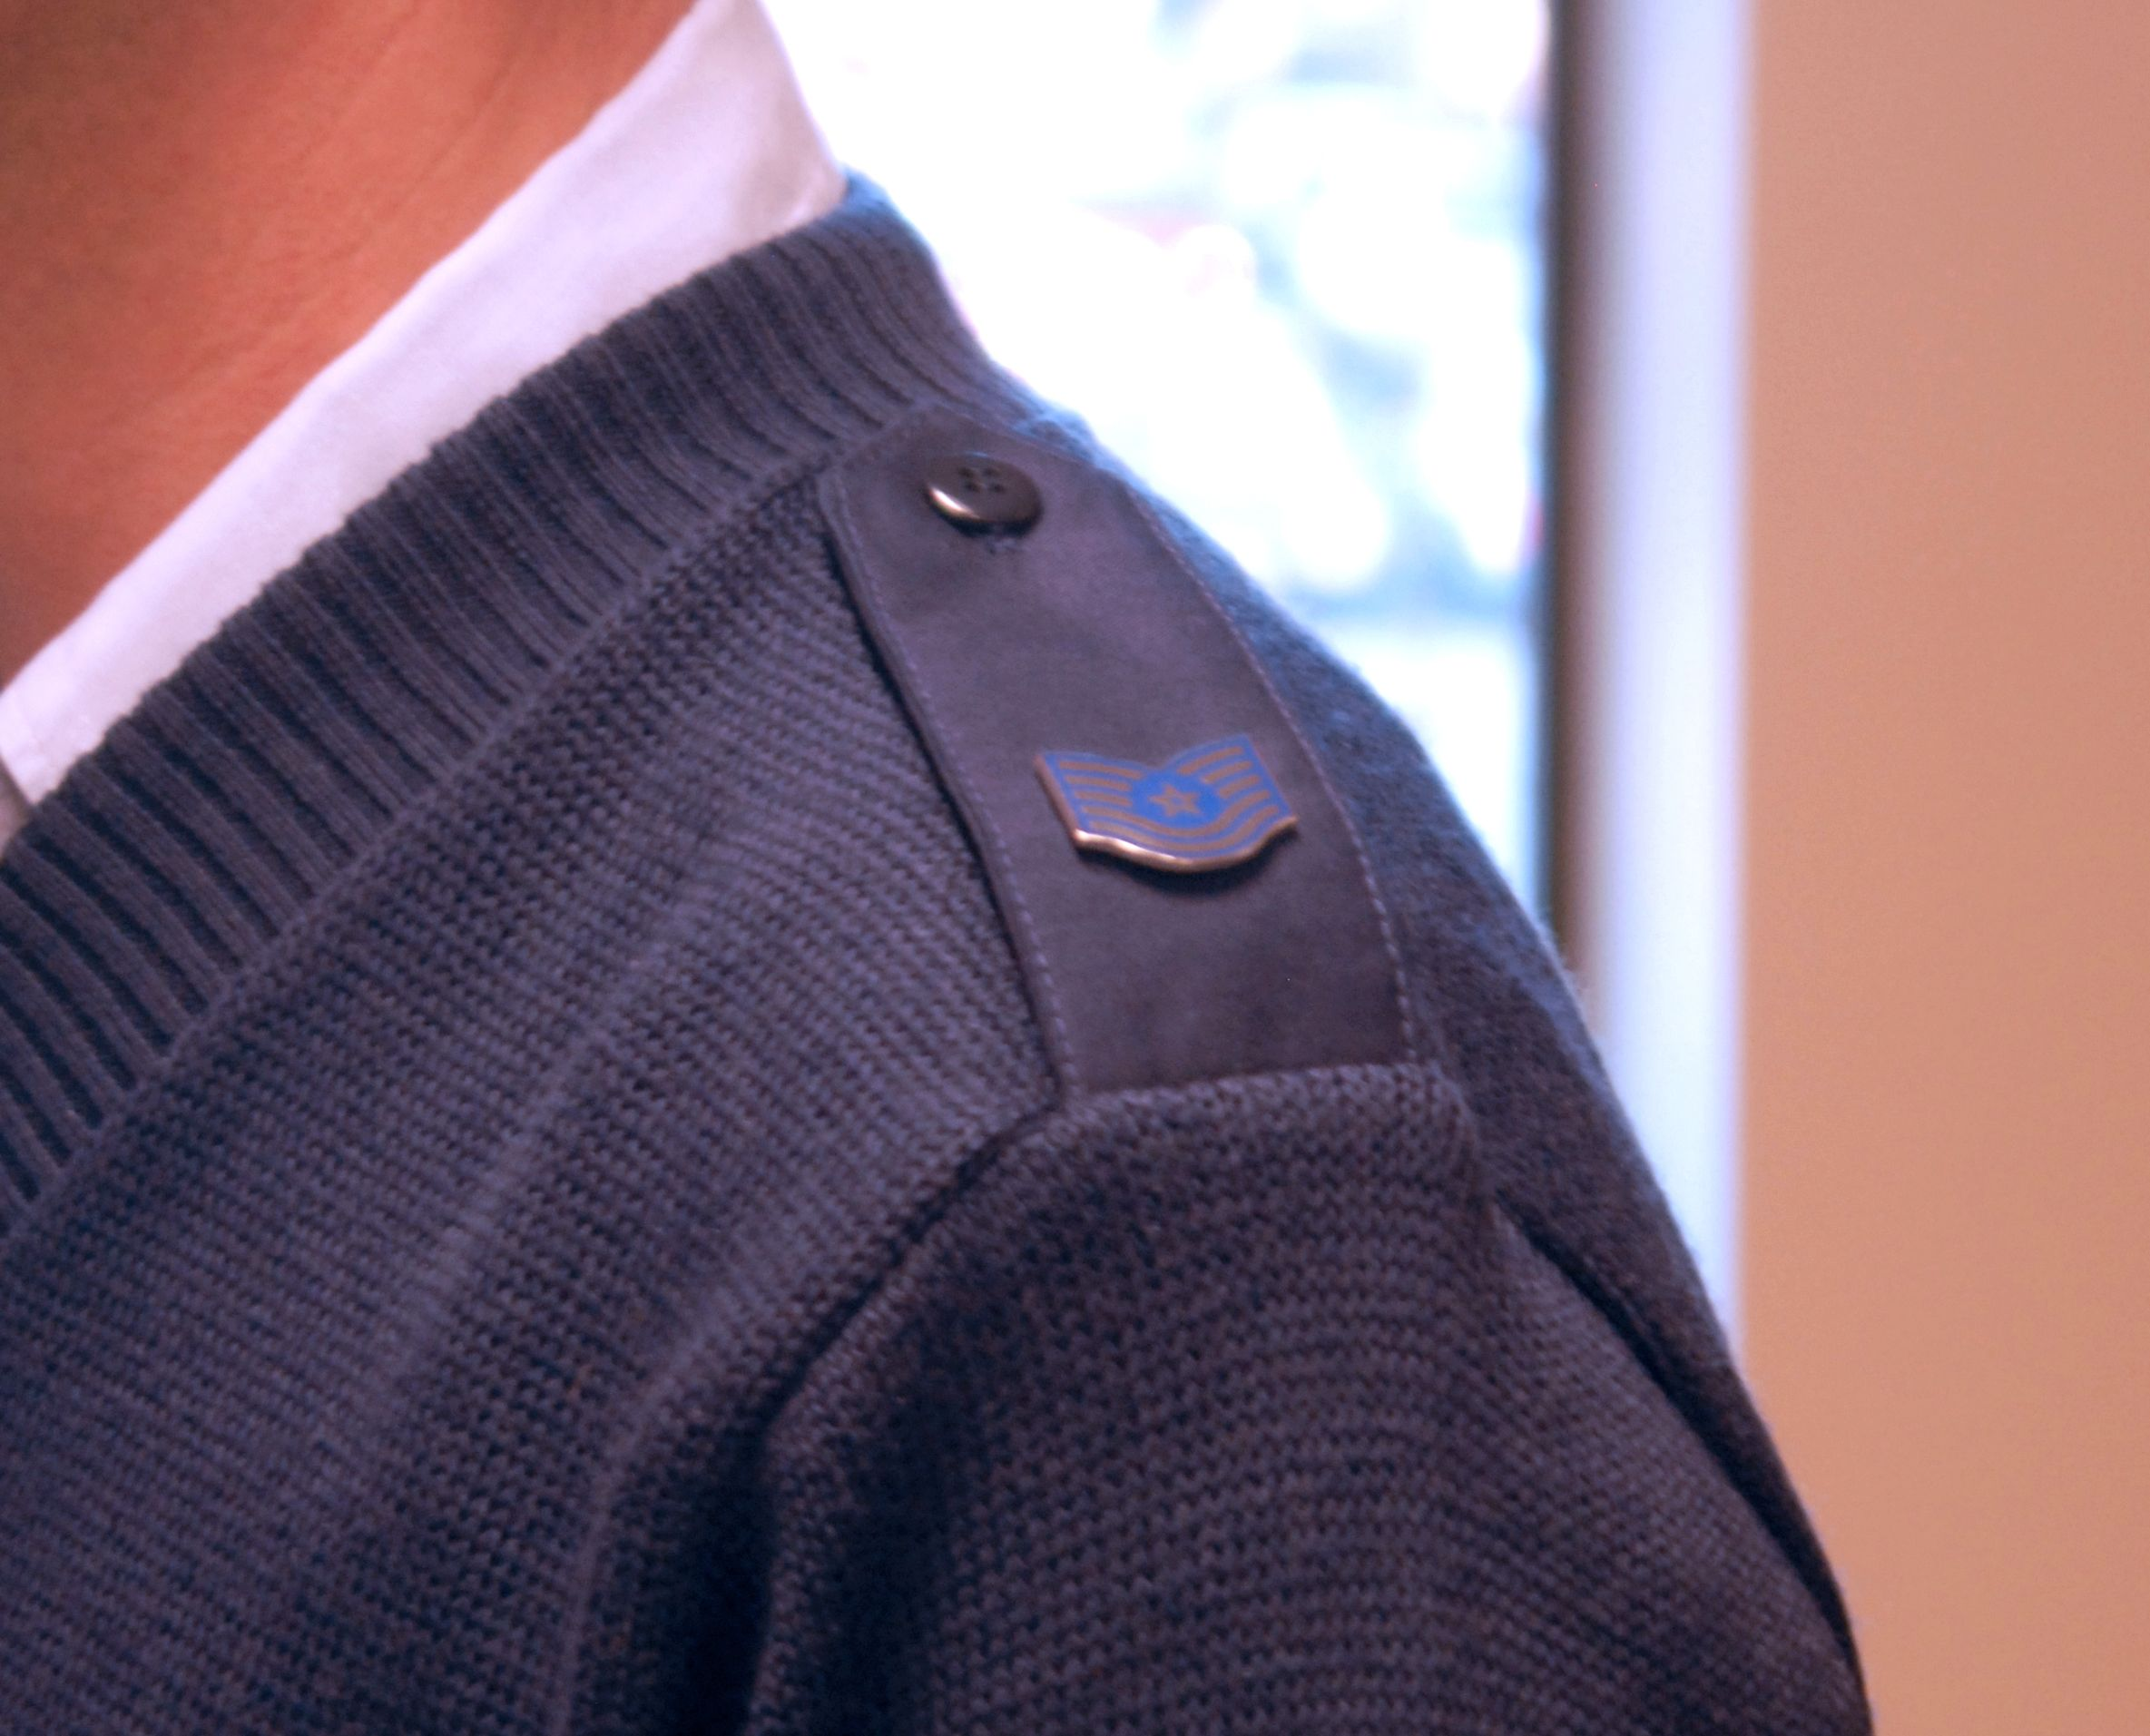 A shoulder button on a military uniform